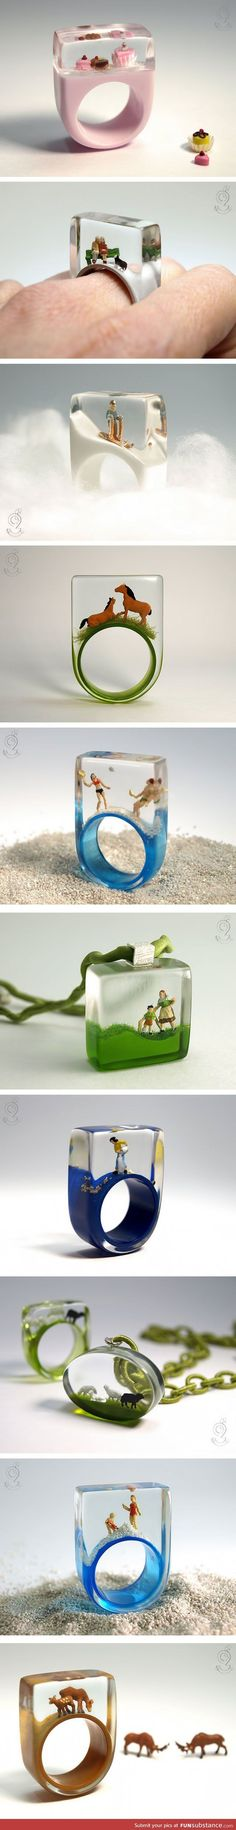 Diy resin jewelry scenes                                                                                                                                                                                 More